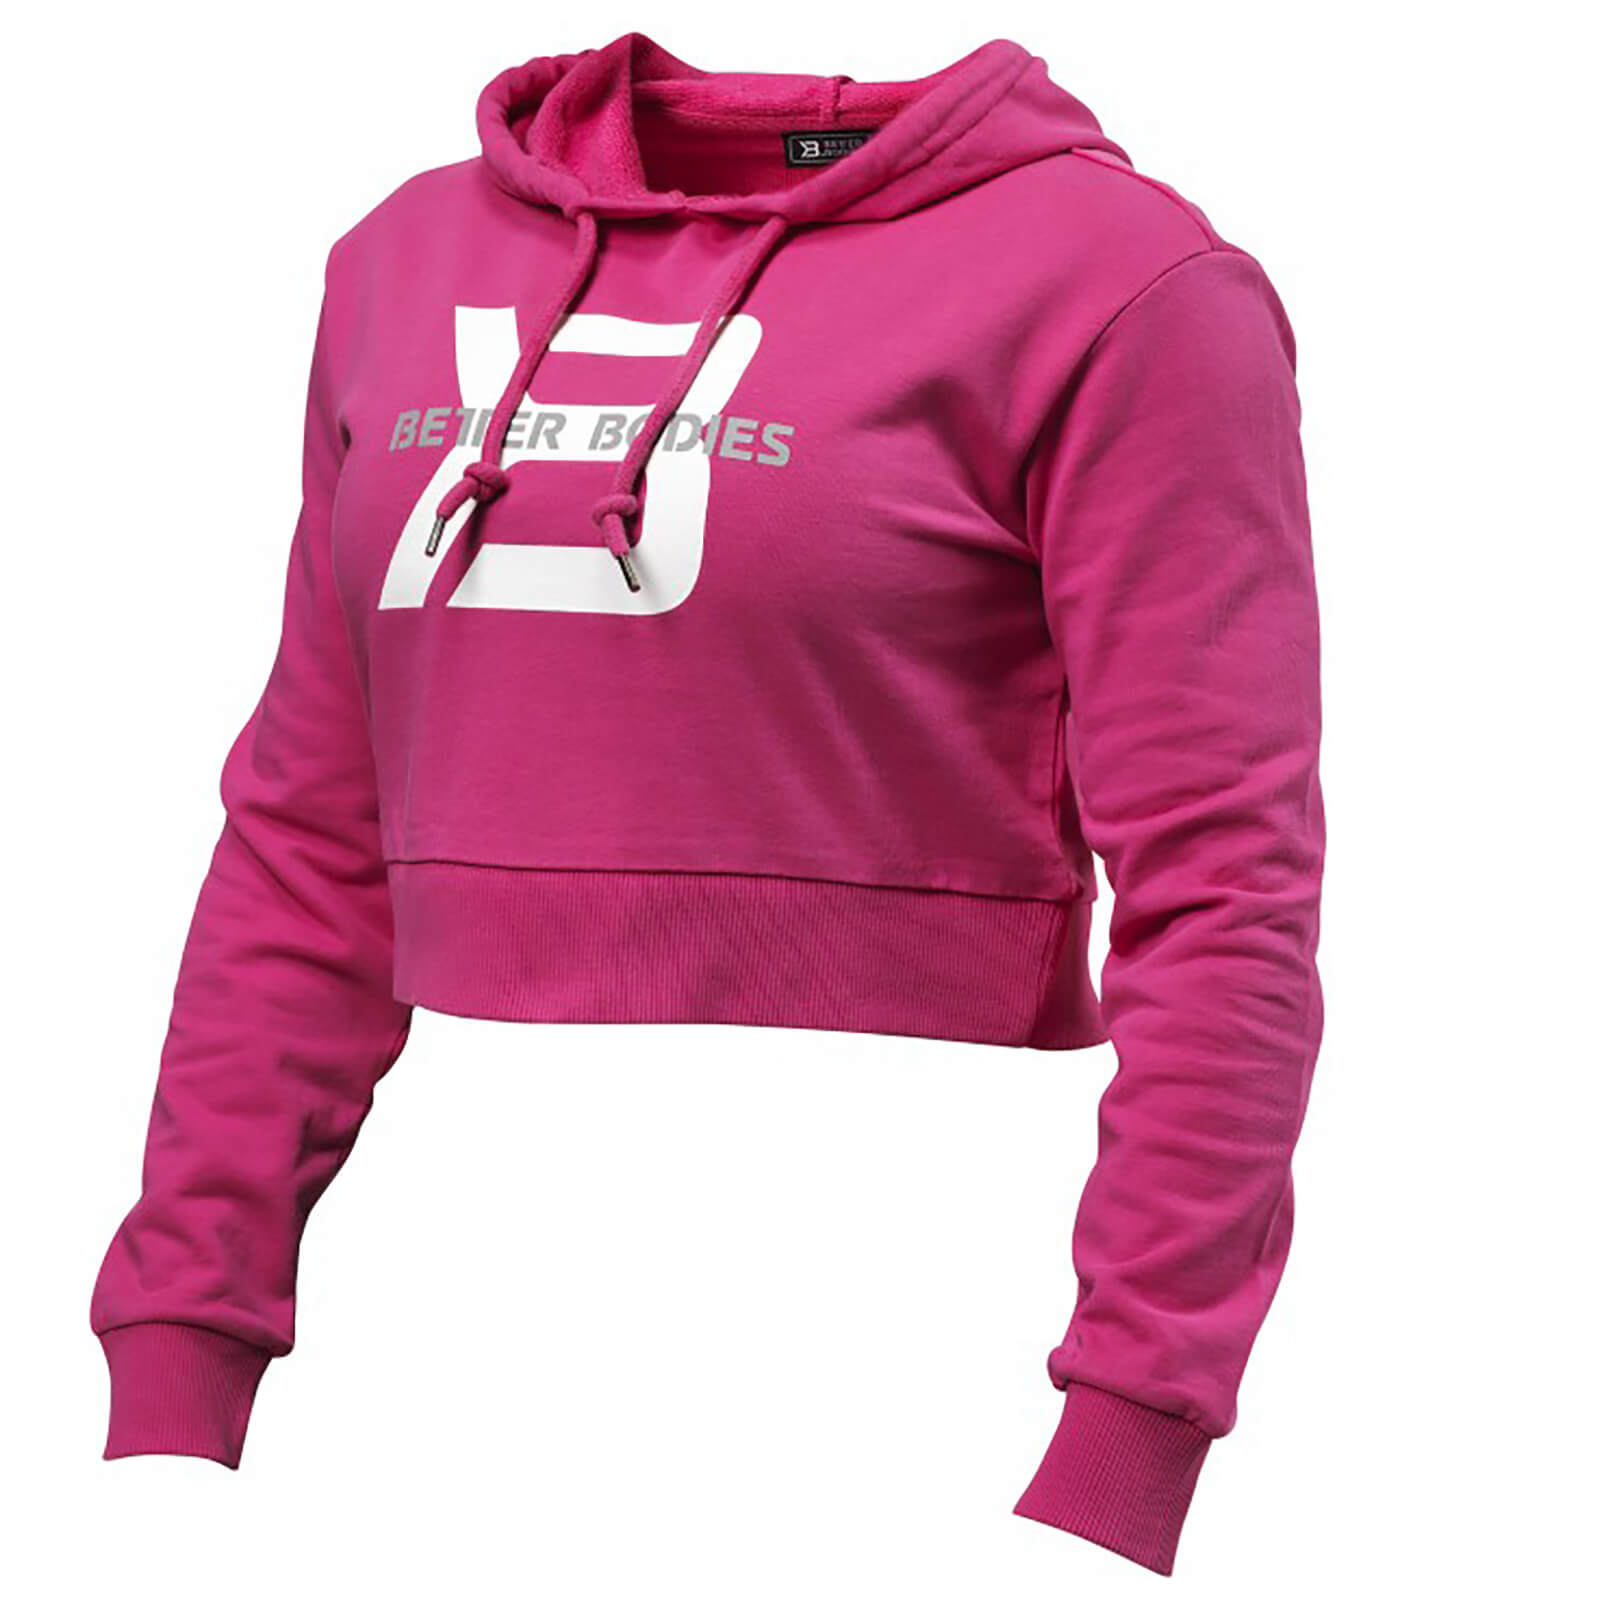 Better Bodies Cropped Hoody - Hot Pink